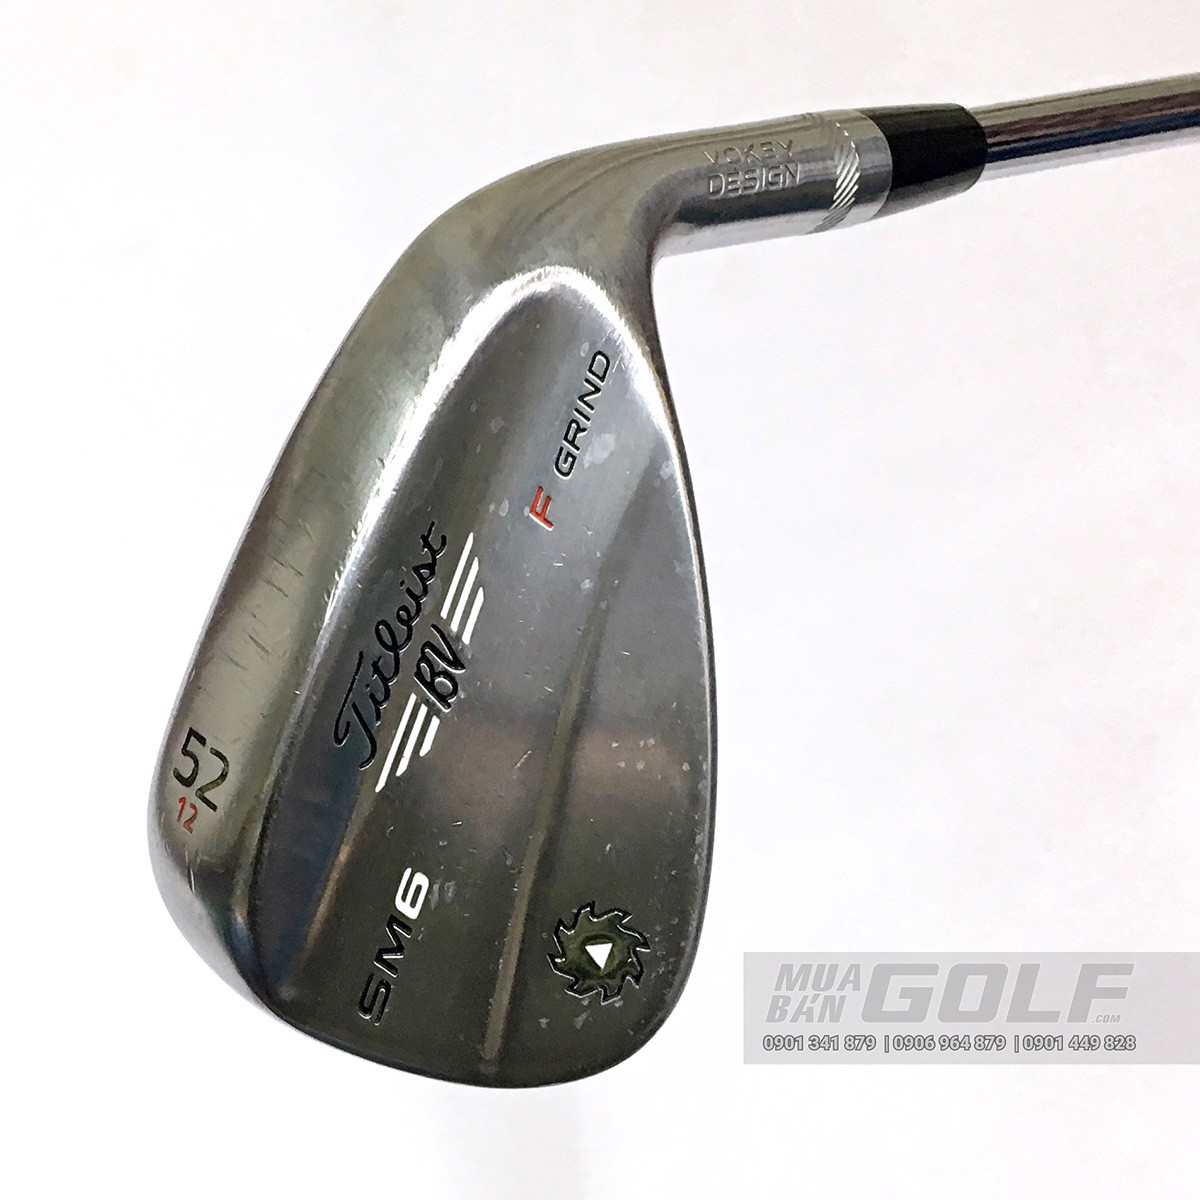 GAY GOLF WEDGE TITLEIST BV SM6 F GRIND LOFT 52 12 SCW FT6